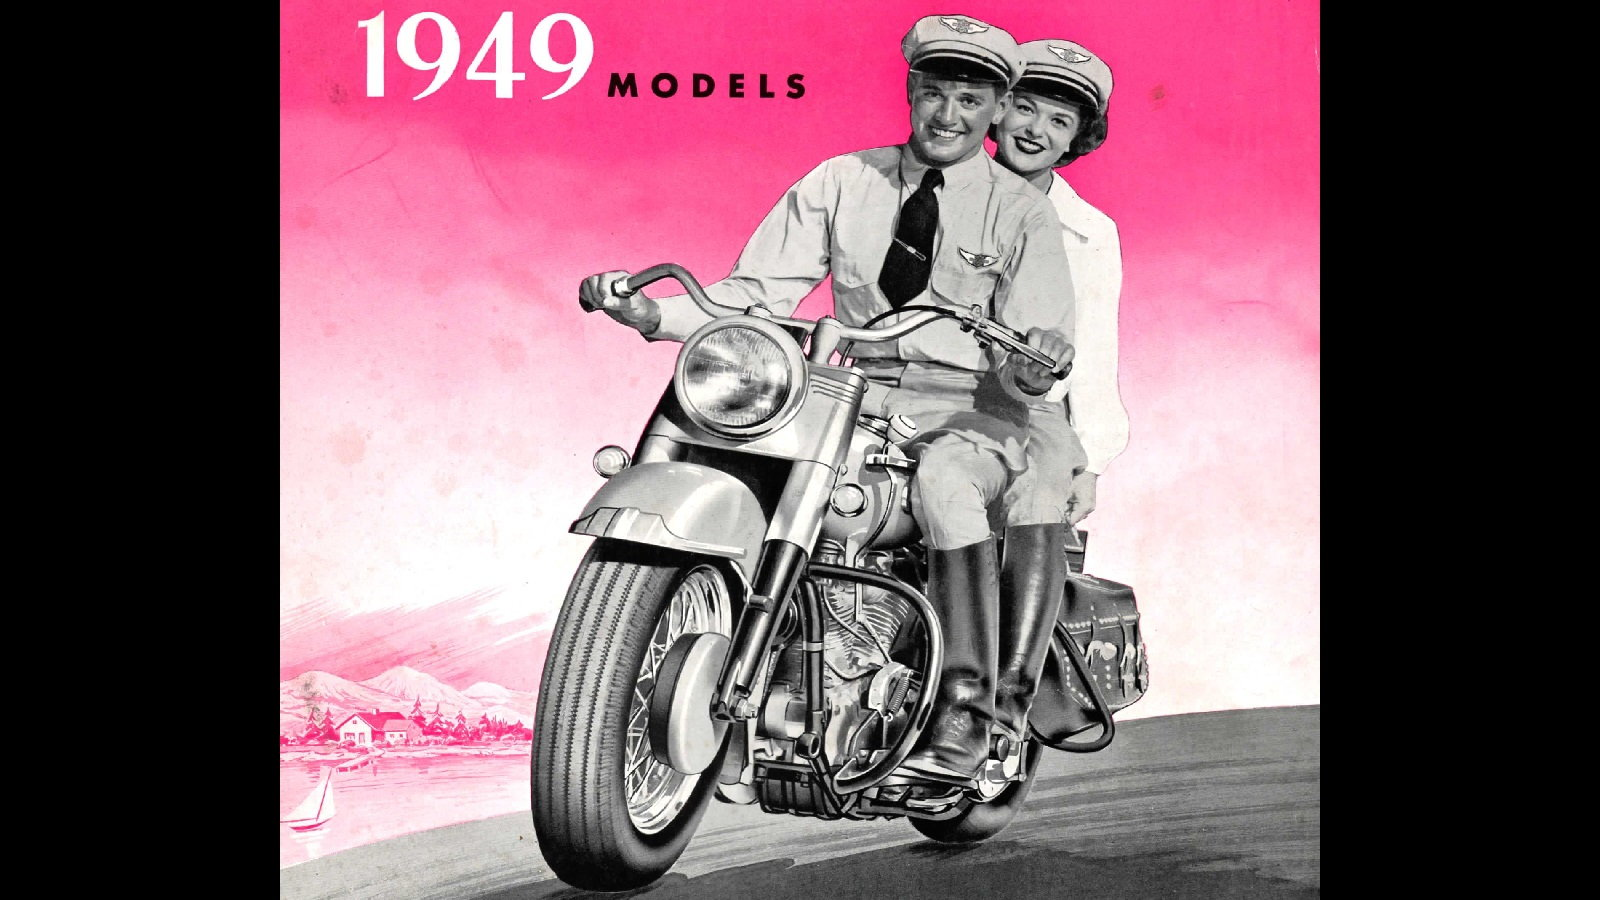 1949 Harley Hydra-Glide Brings Historical Significance